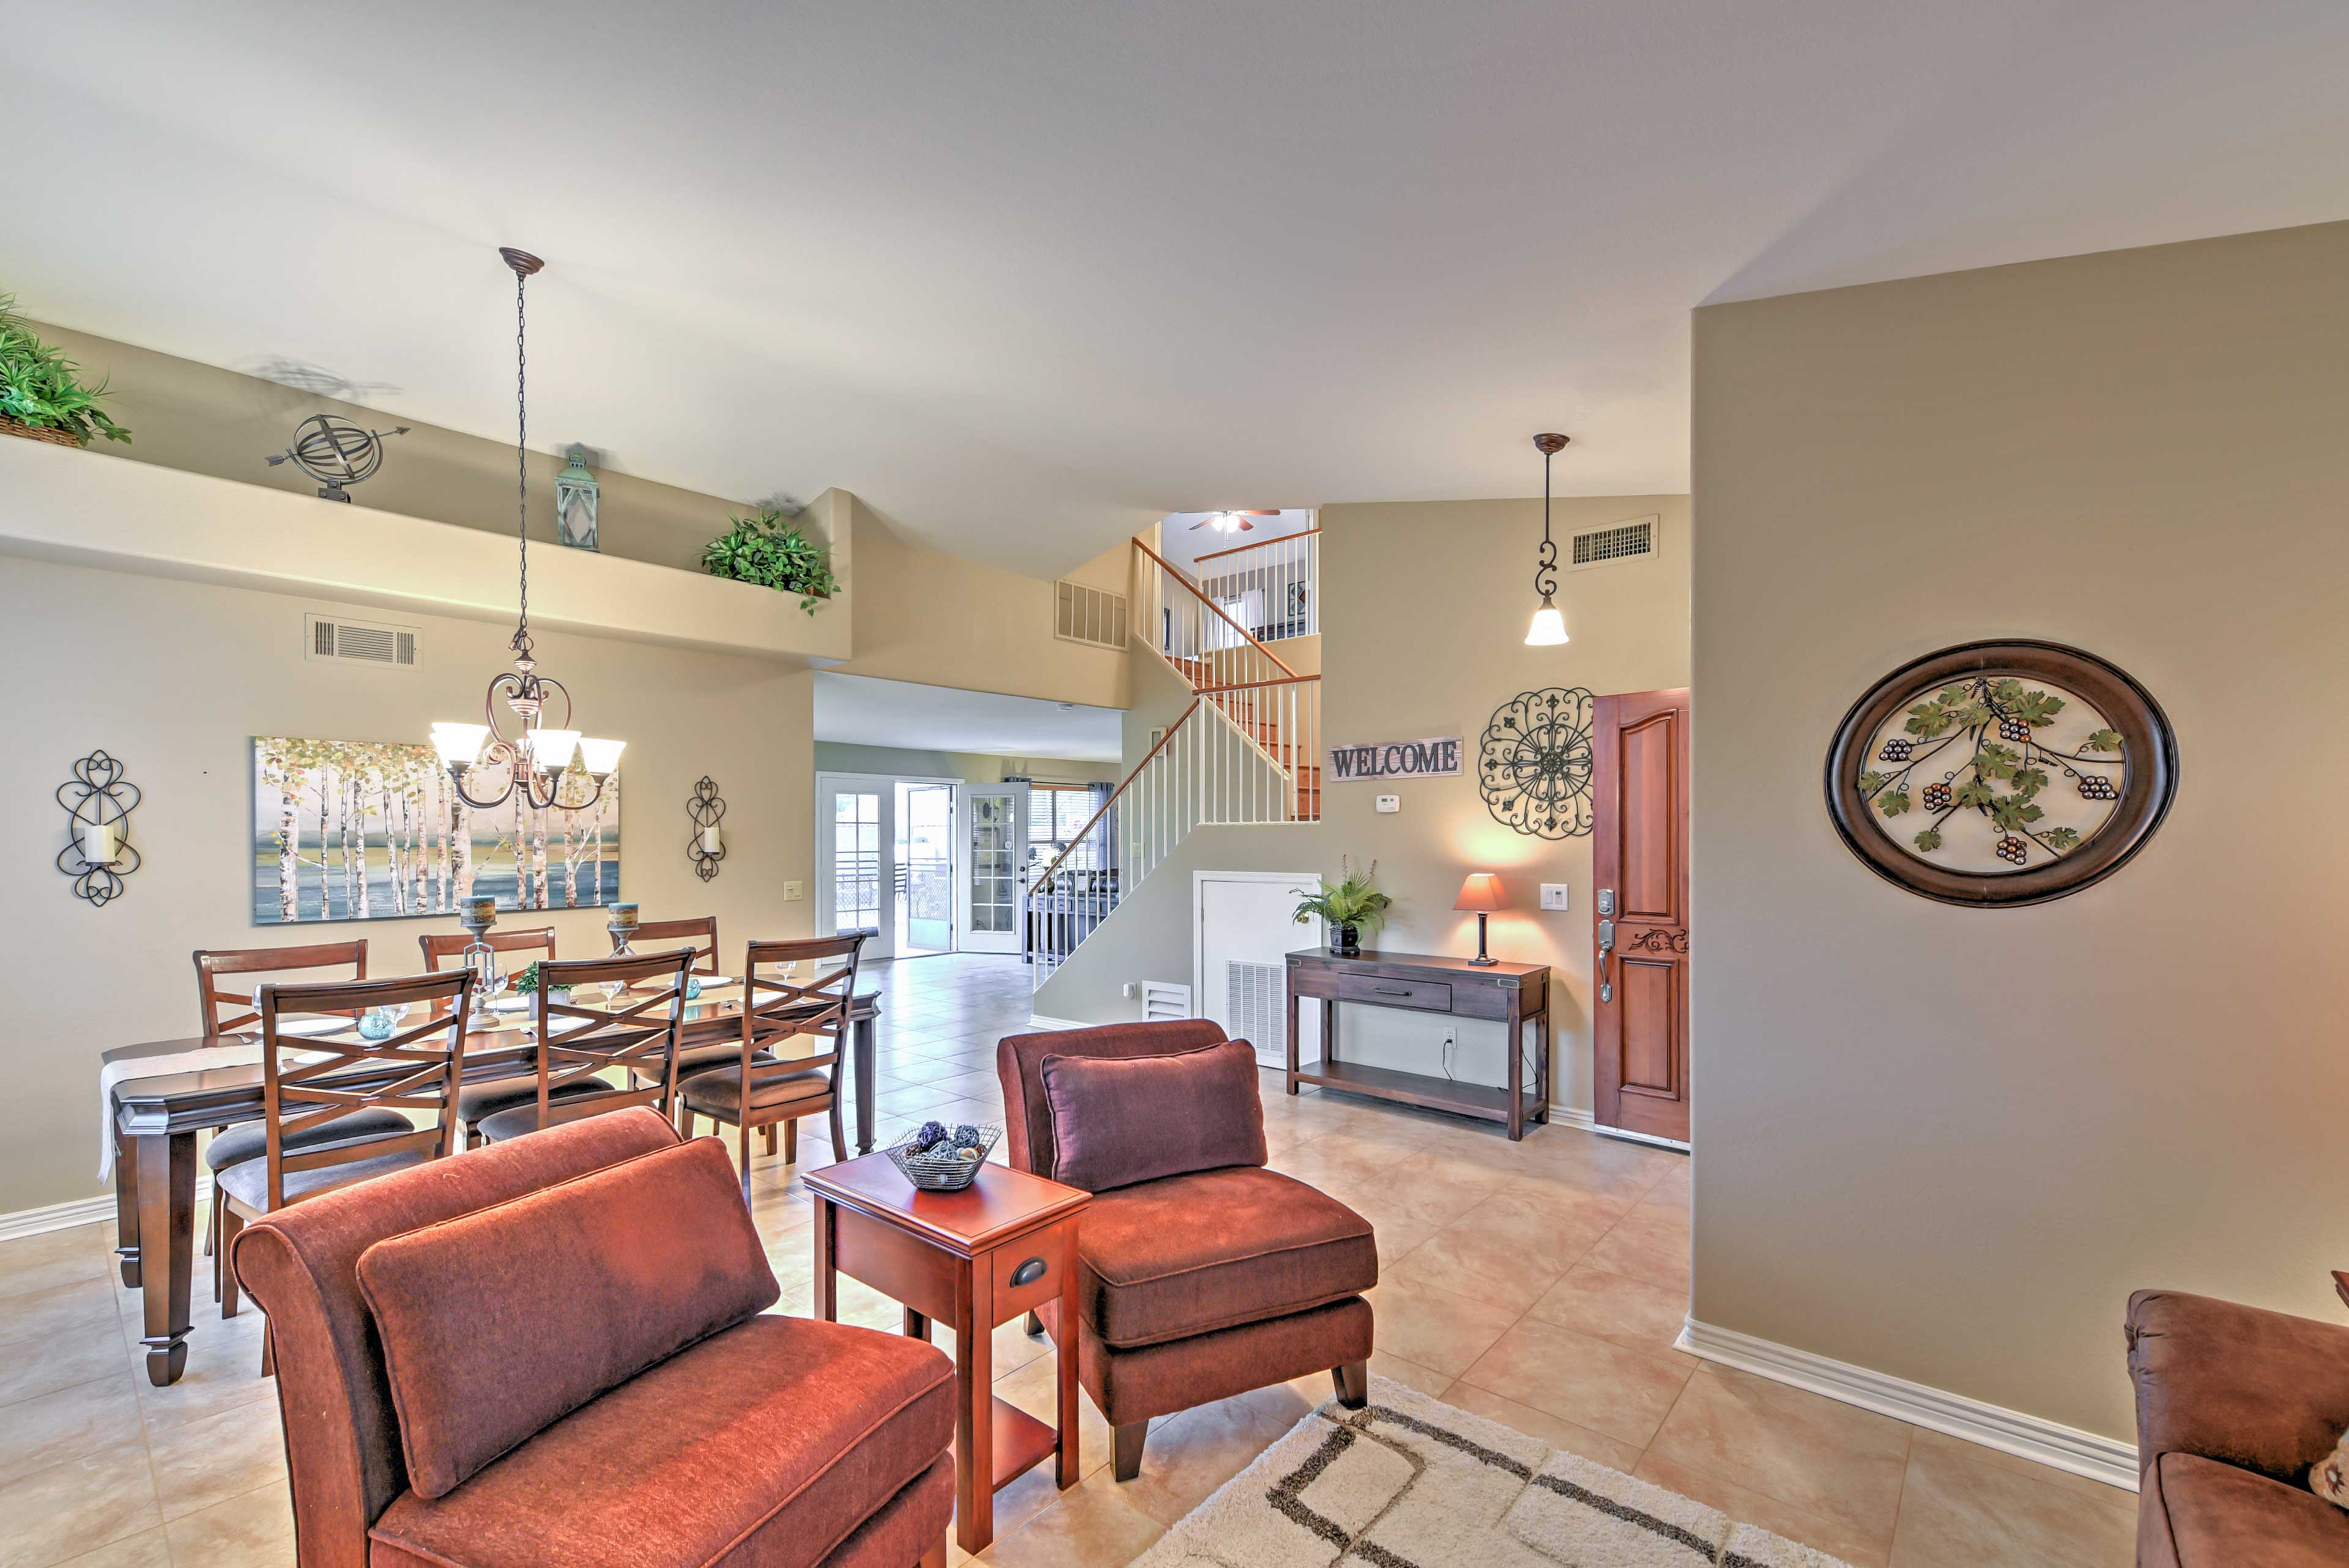 Spread out across 2,400 square feet!